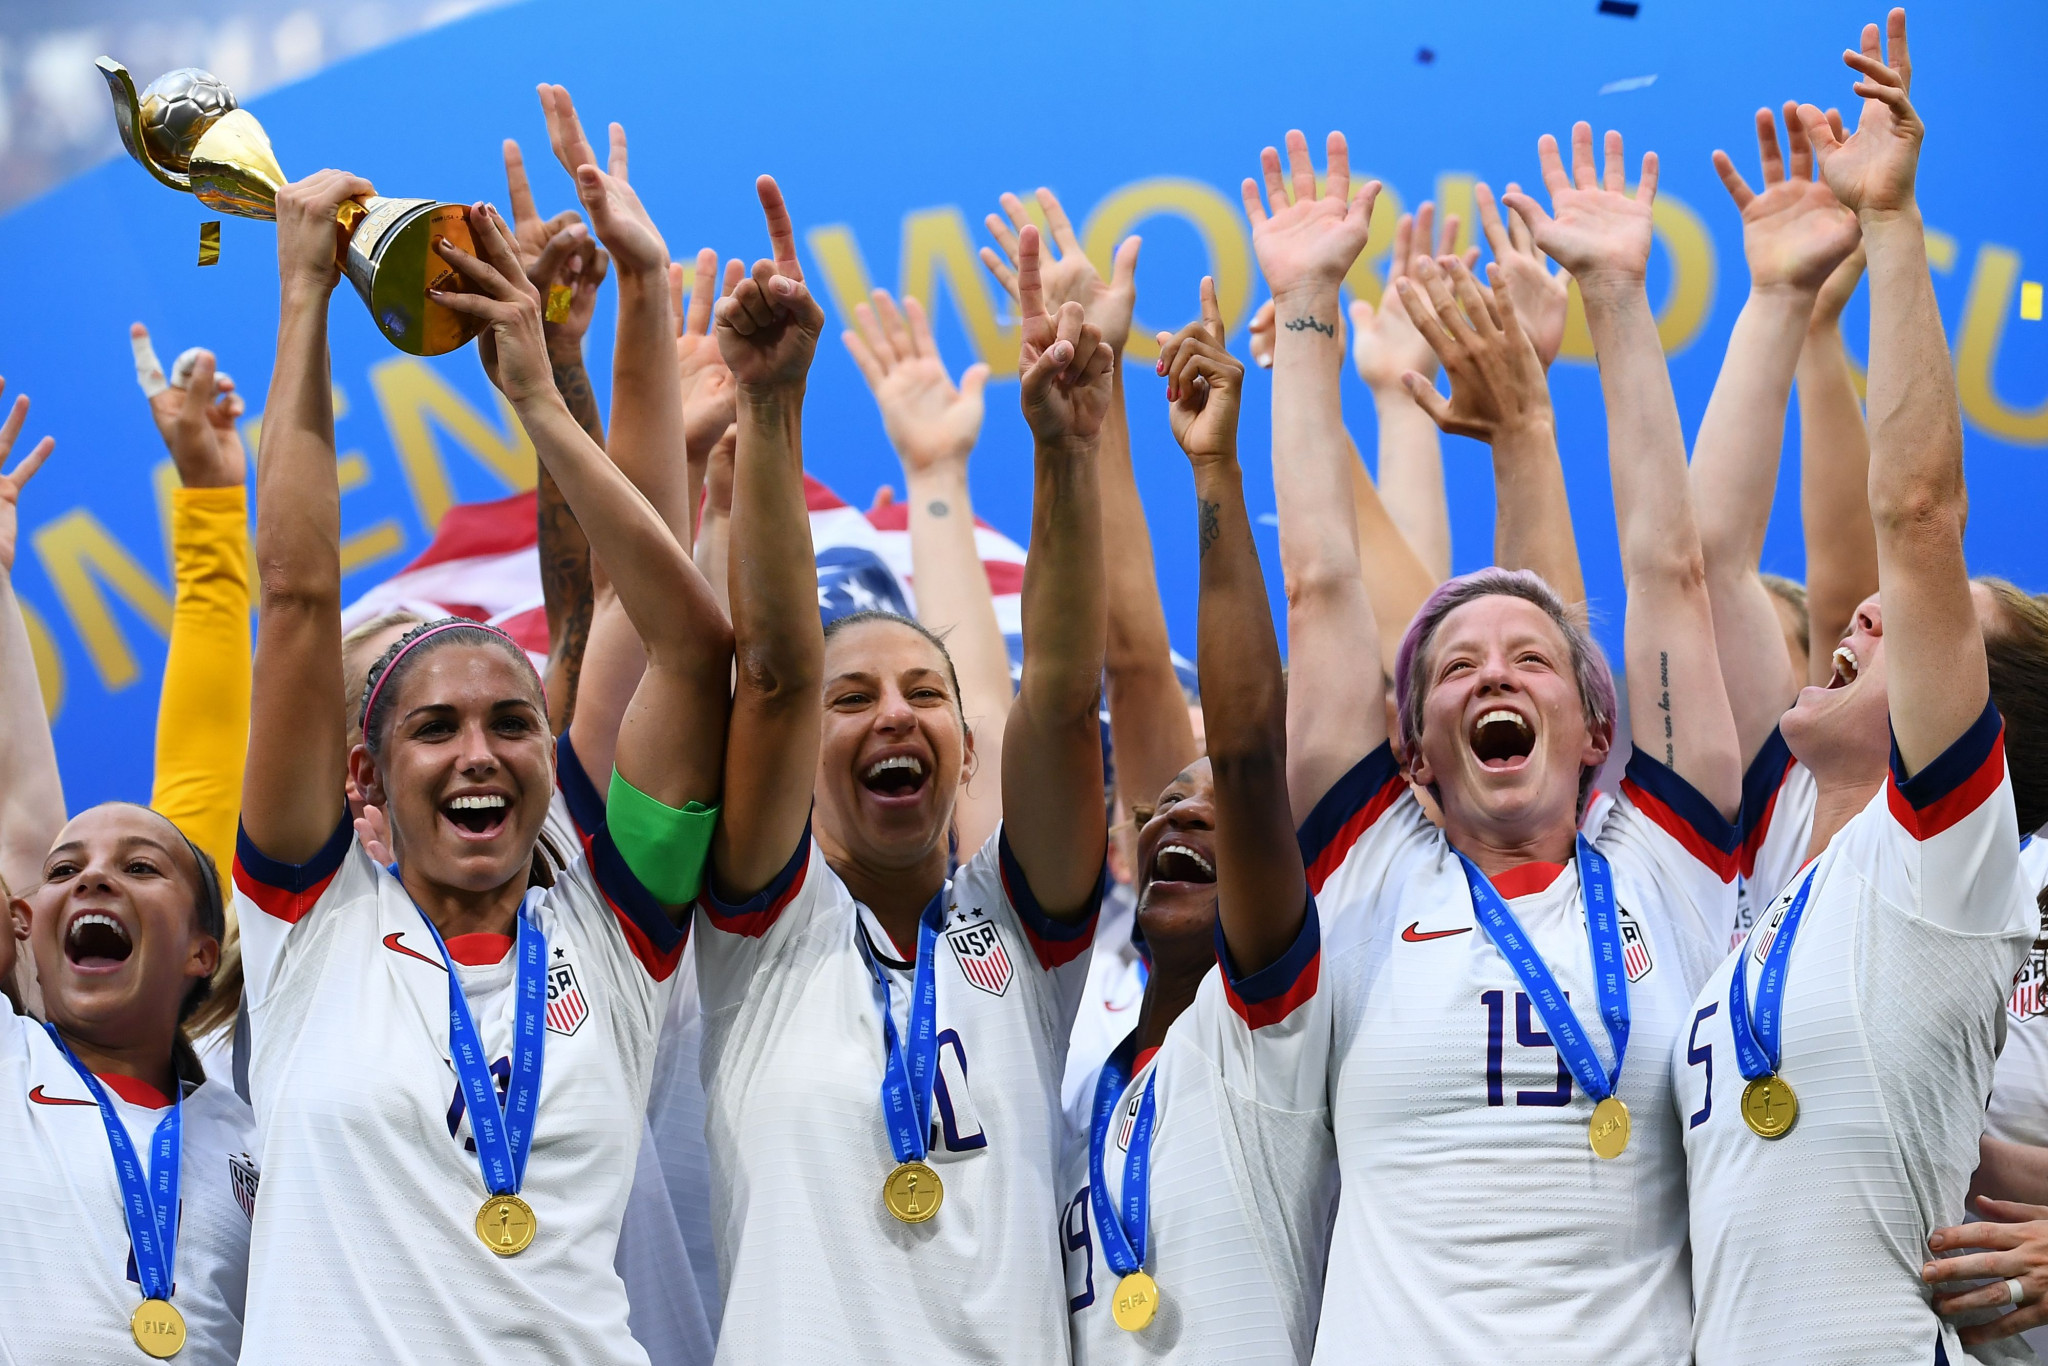 United States' victory in the final was the most-watched FIFA Women's World Cup match of all time ©Getty Images